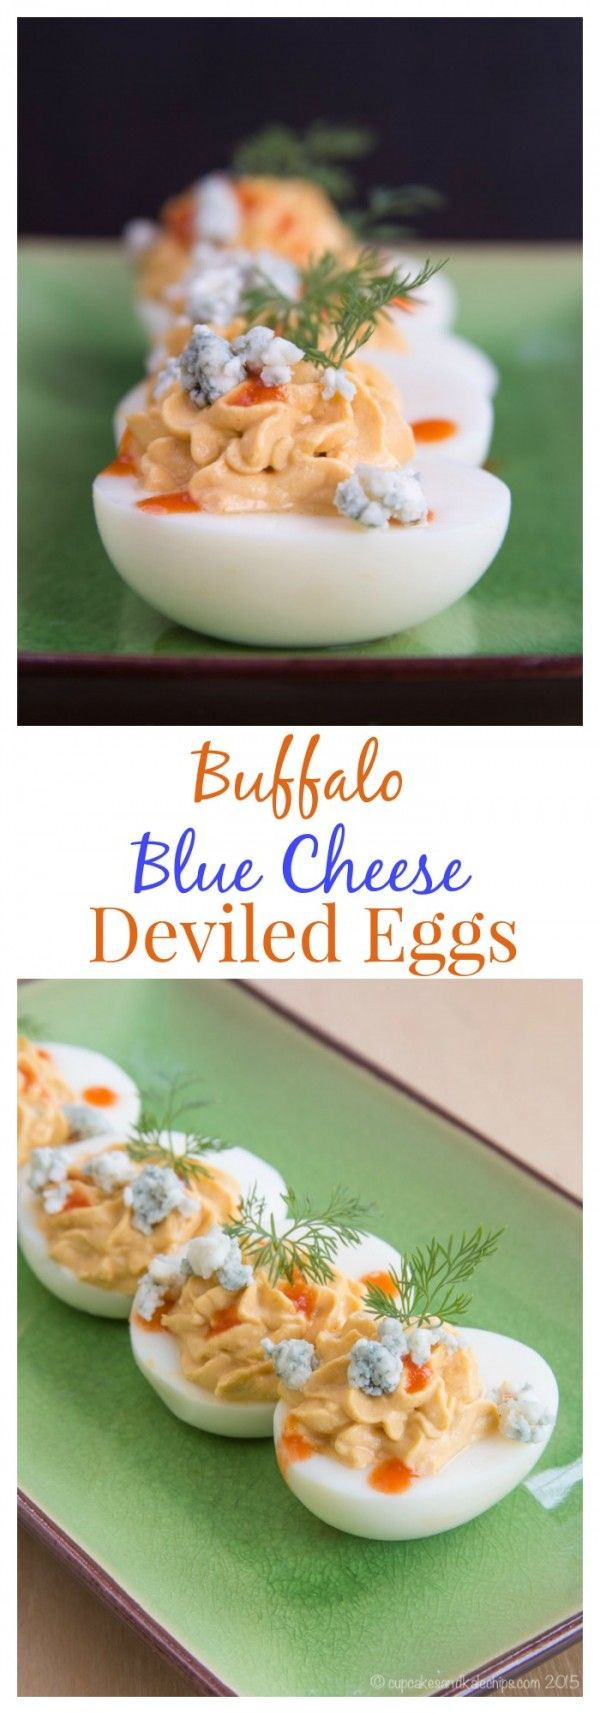 Buffalo Blue Cheese Deviled Eggs are a spicy twist on the classic protein-packed appetizer or snack, lighted up with Greek yogurt   cupcakesandkalechips.com   gluten free and vegetarian recipe